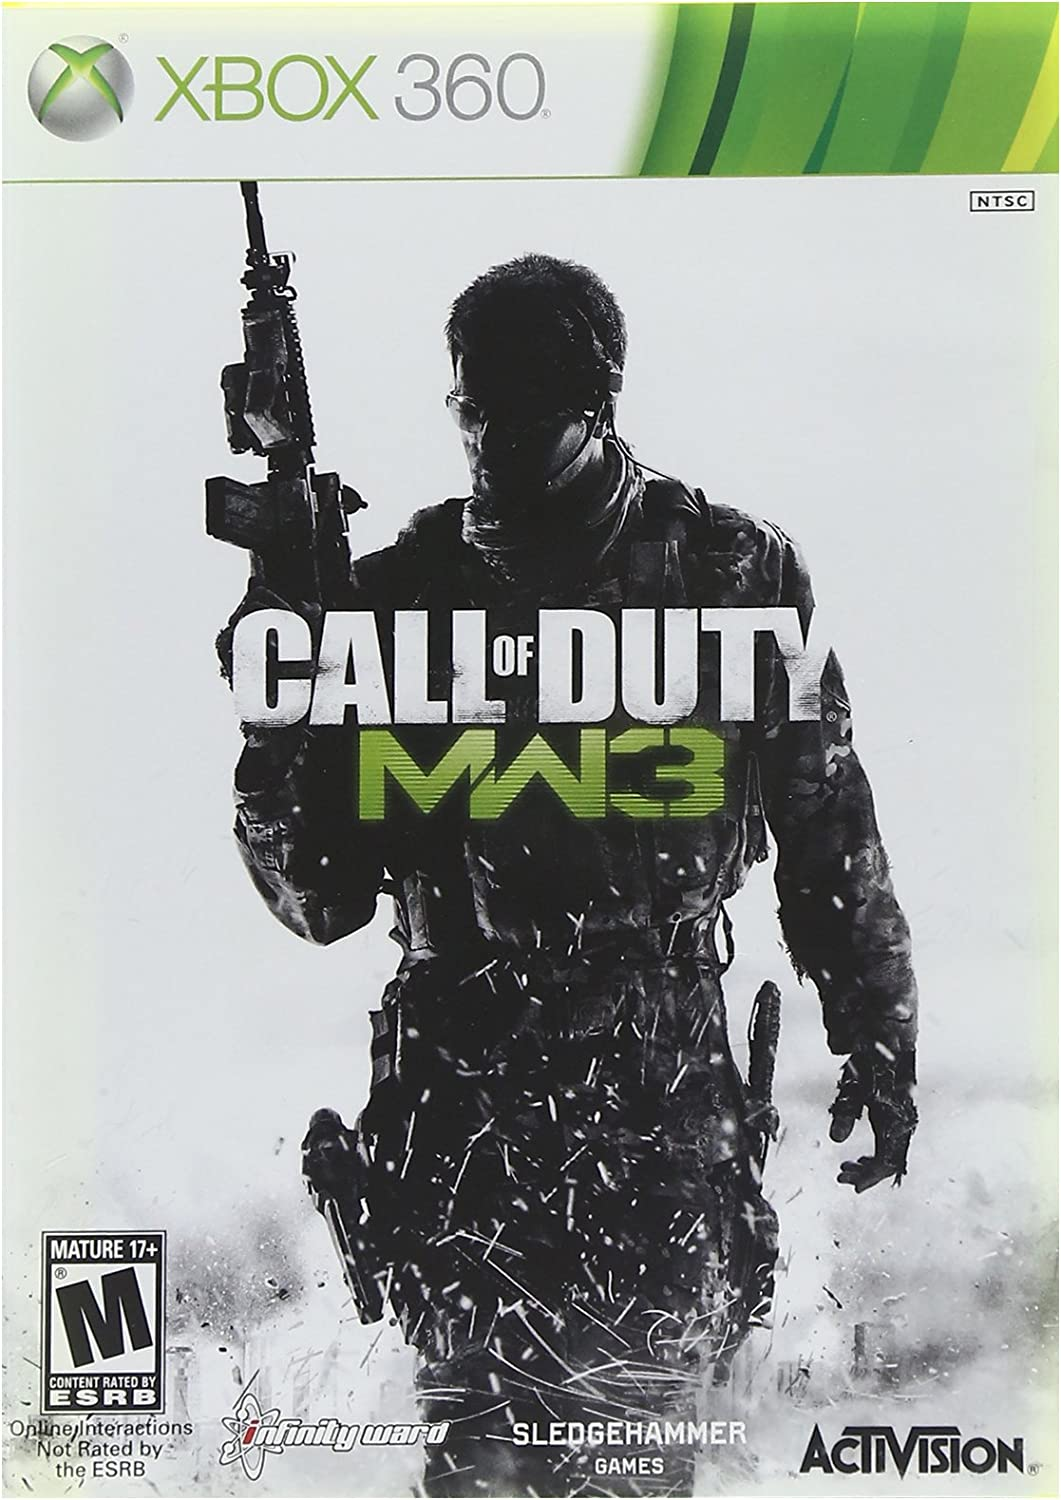 Amazon.com: Call of Duty: Modern Warfare 3 - Xbox 360: Video ...